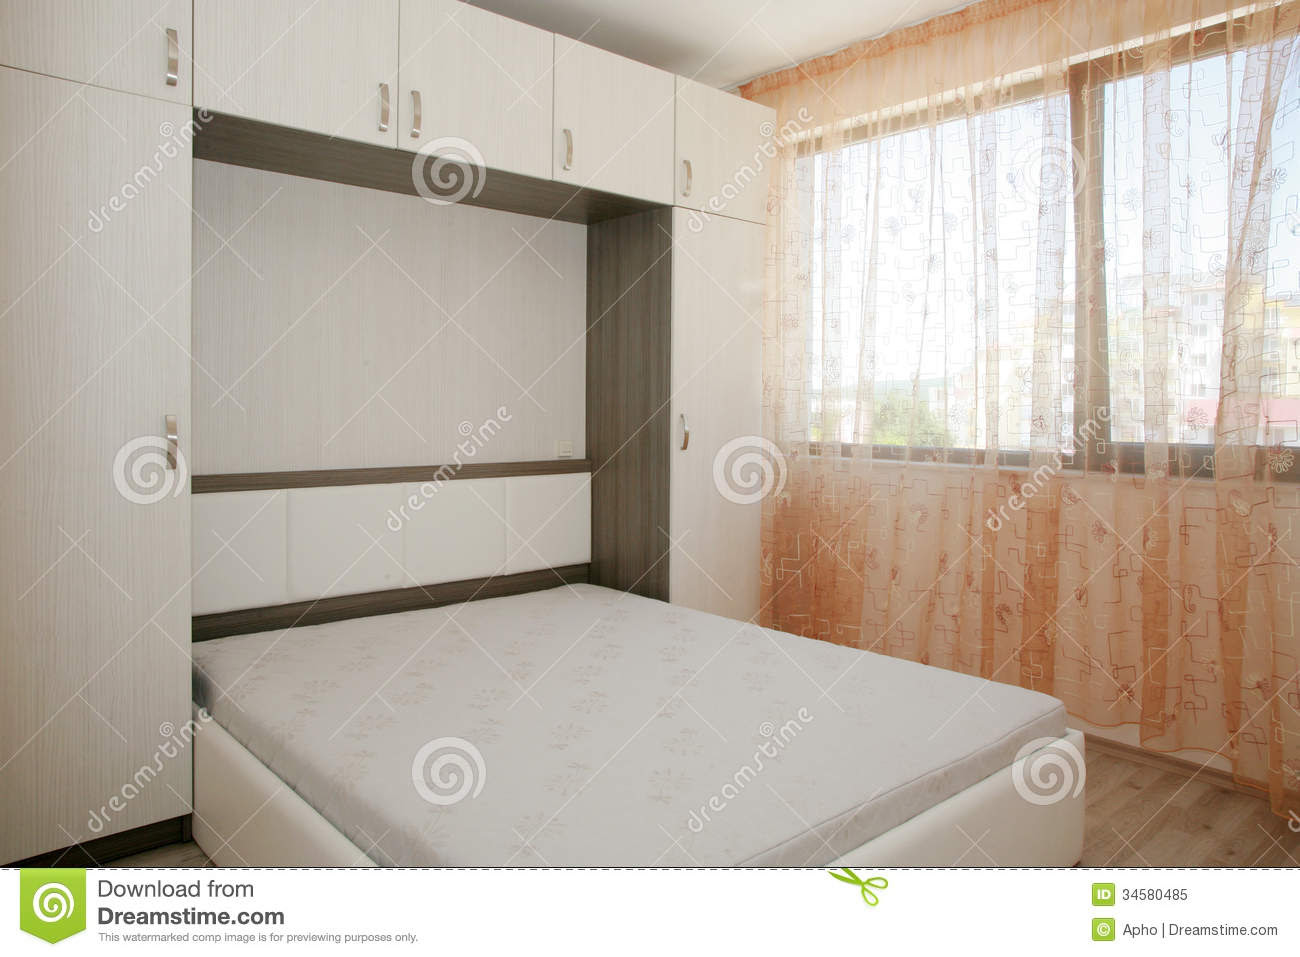 Bedroom Royalty Free Stock Photo - Image: 34580485